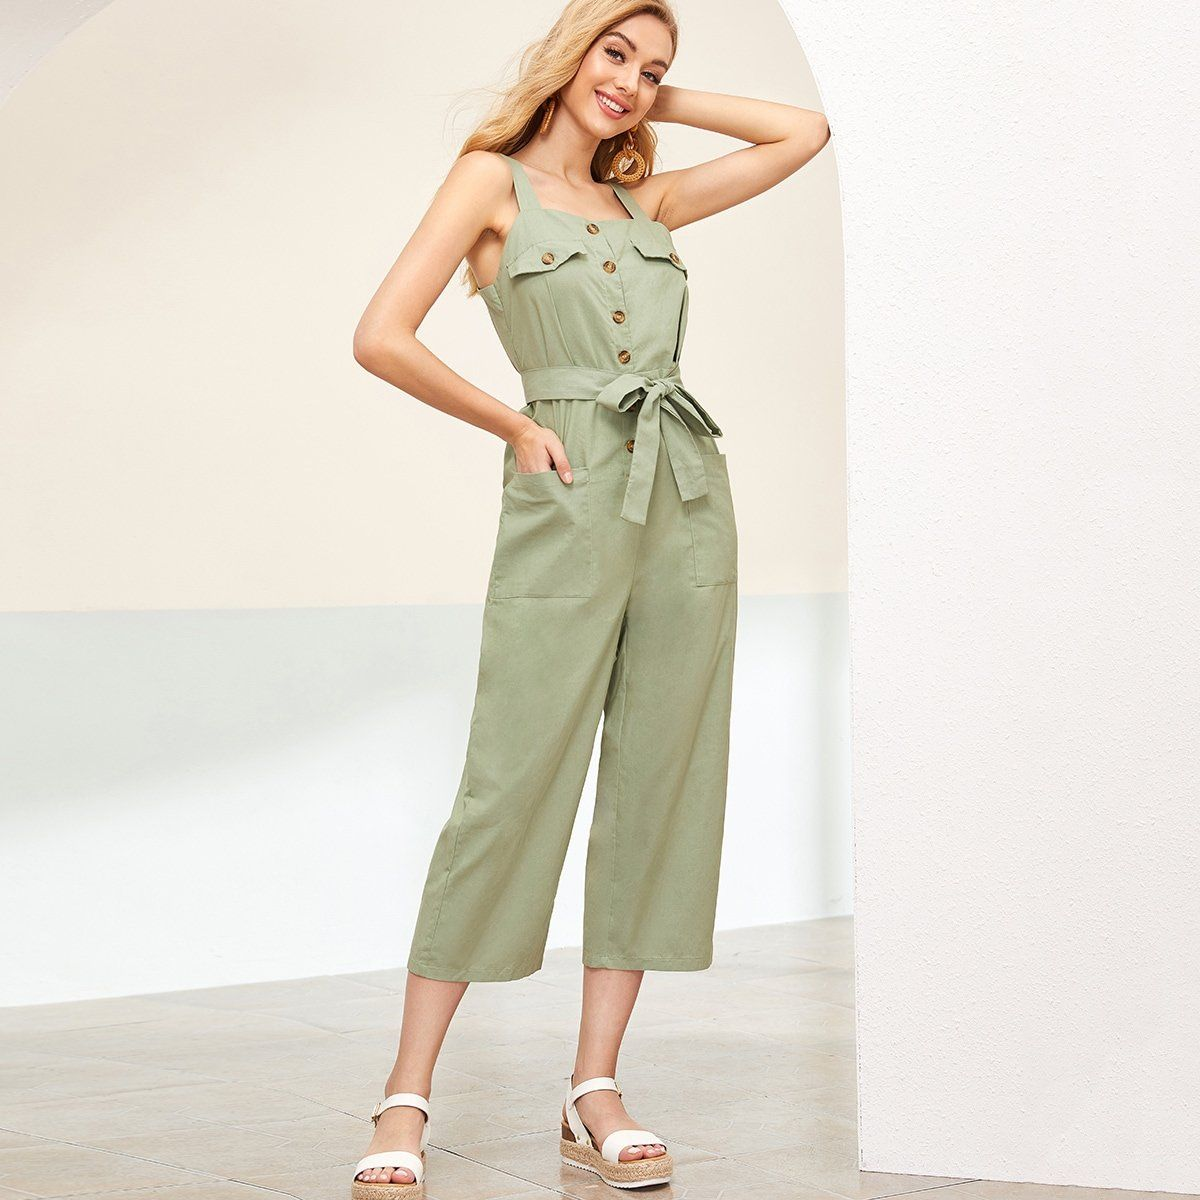 Solid Double Pocket Belted Cargo Jumpsuit Jumpsuit Clothes For Women Fashion